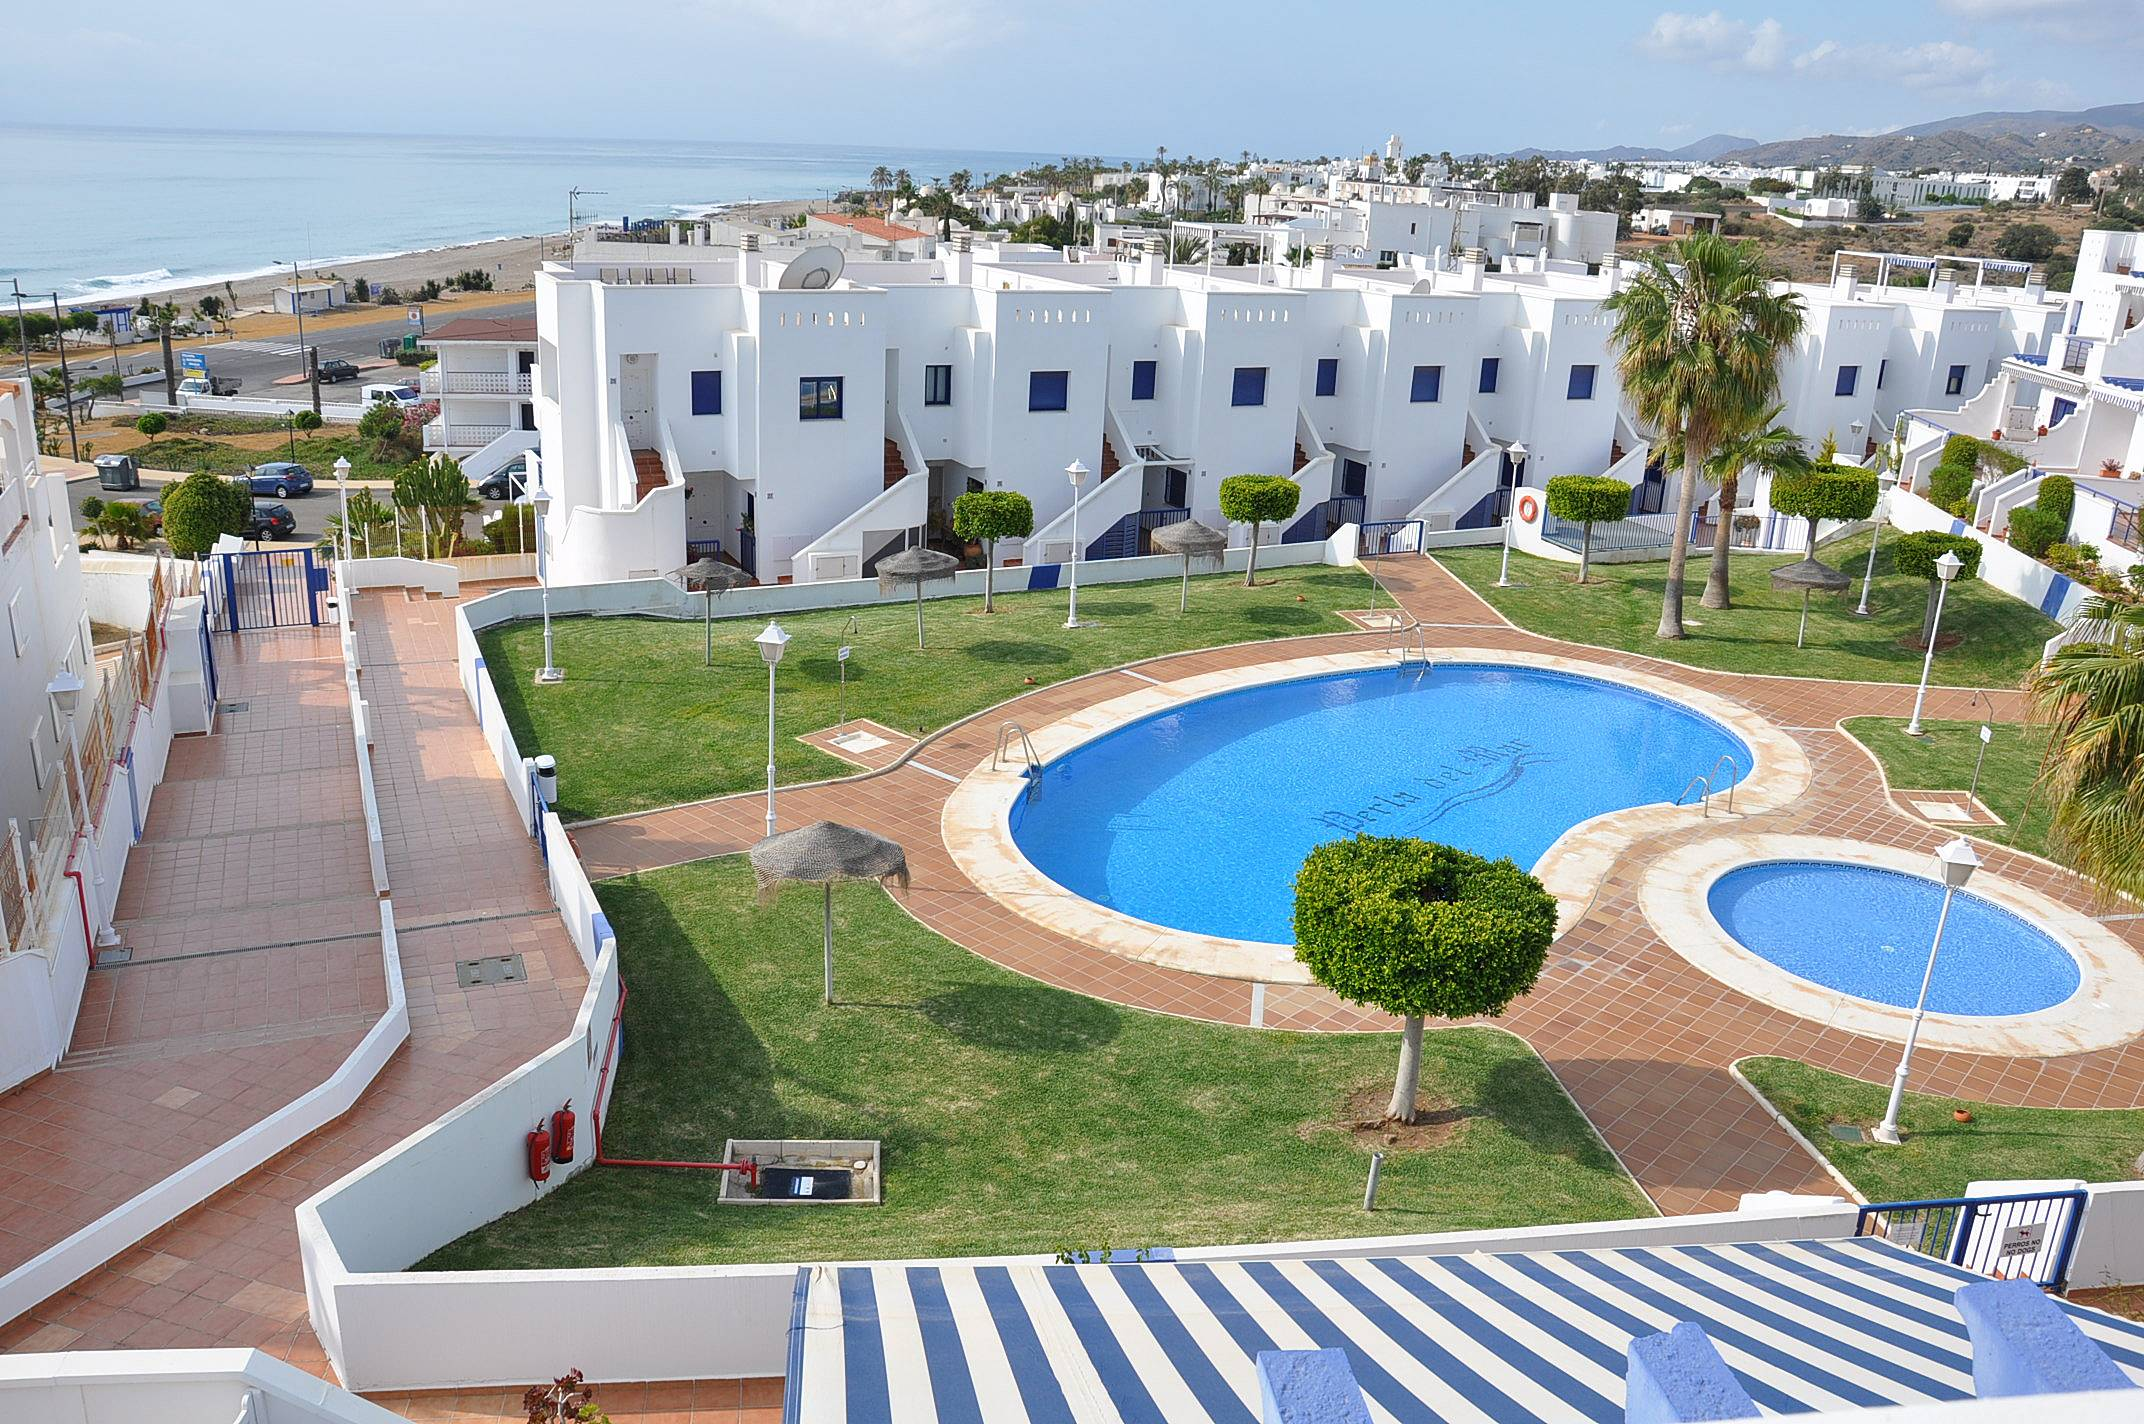 Apartment for rent only 100 meters from the beach for Apartamentos playa mojacar